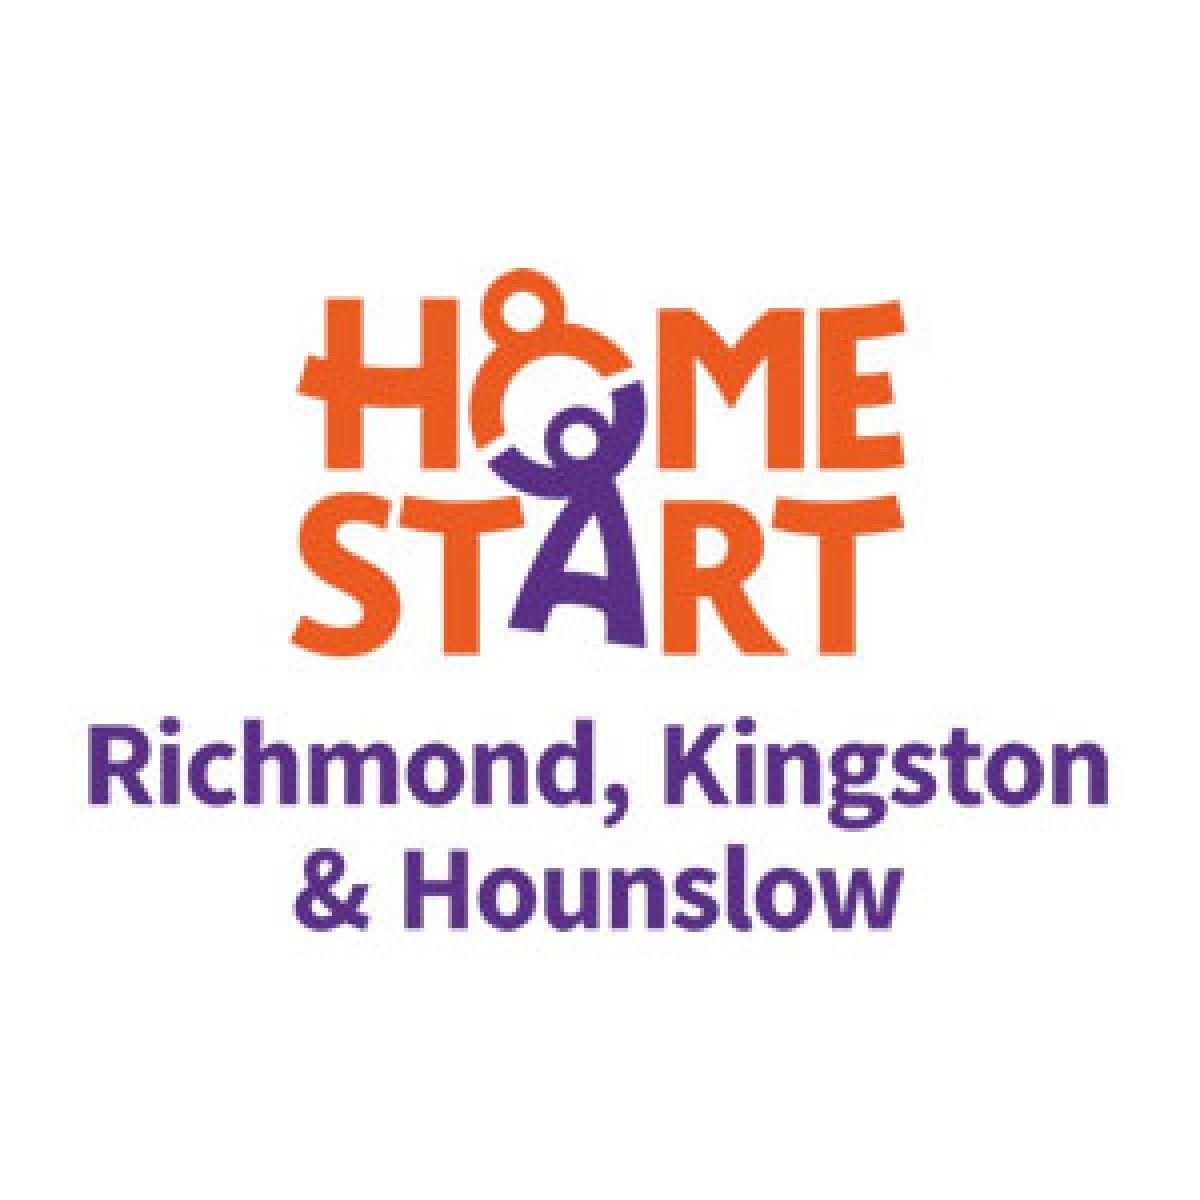 Home-Start Richmond, Kingston and Hounslow eCards